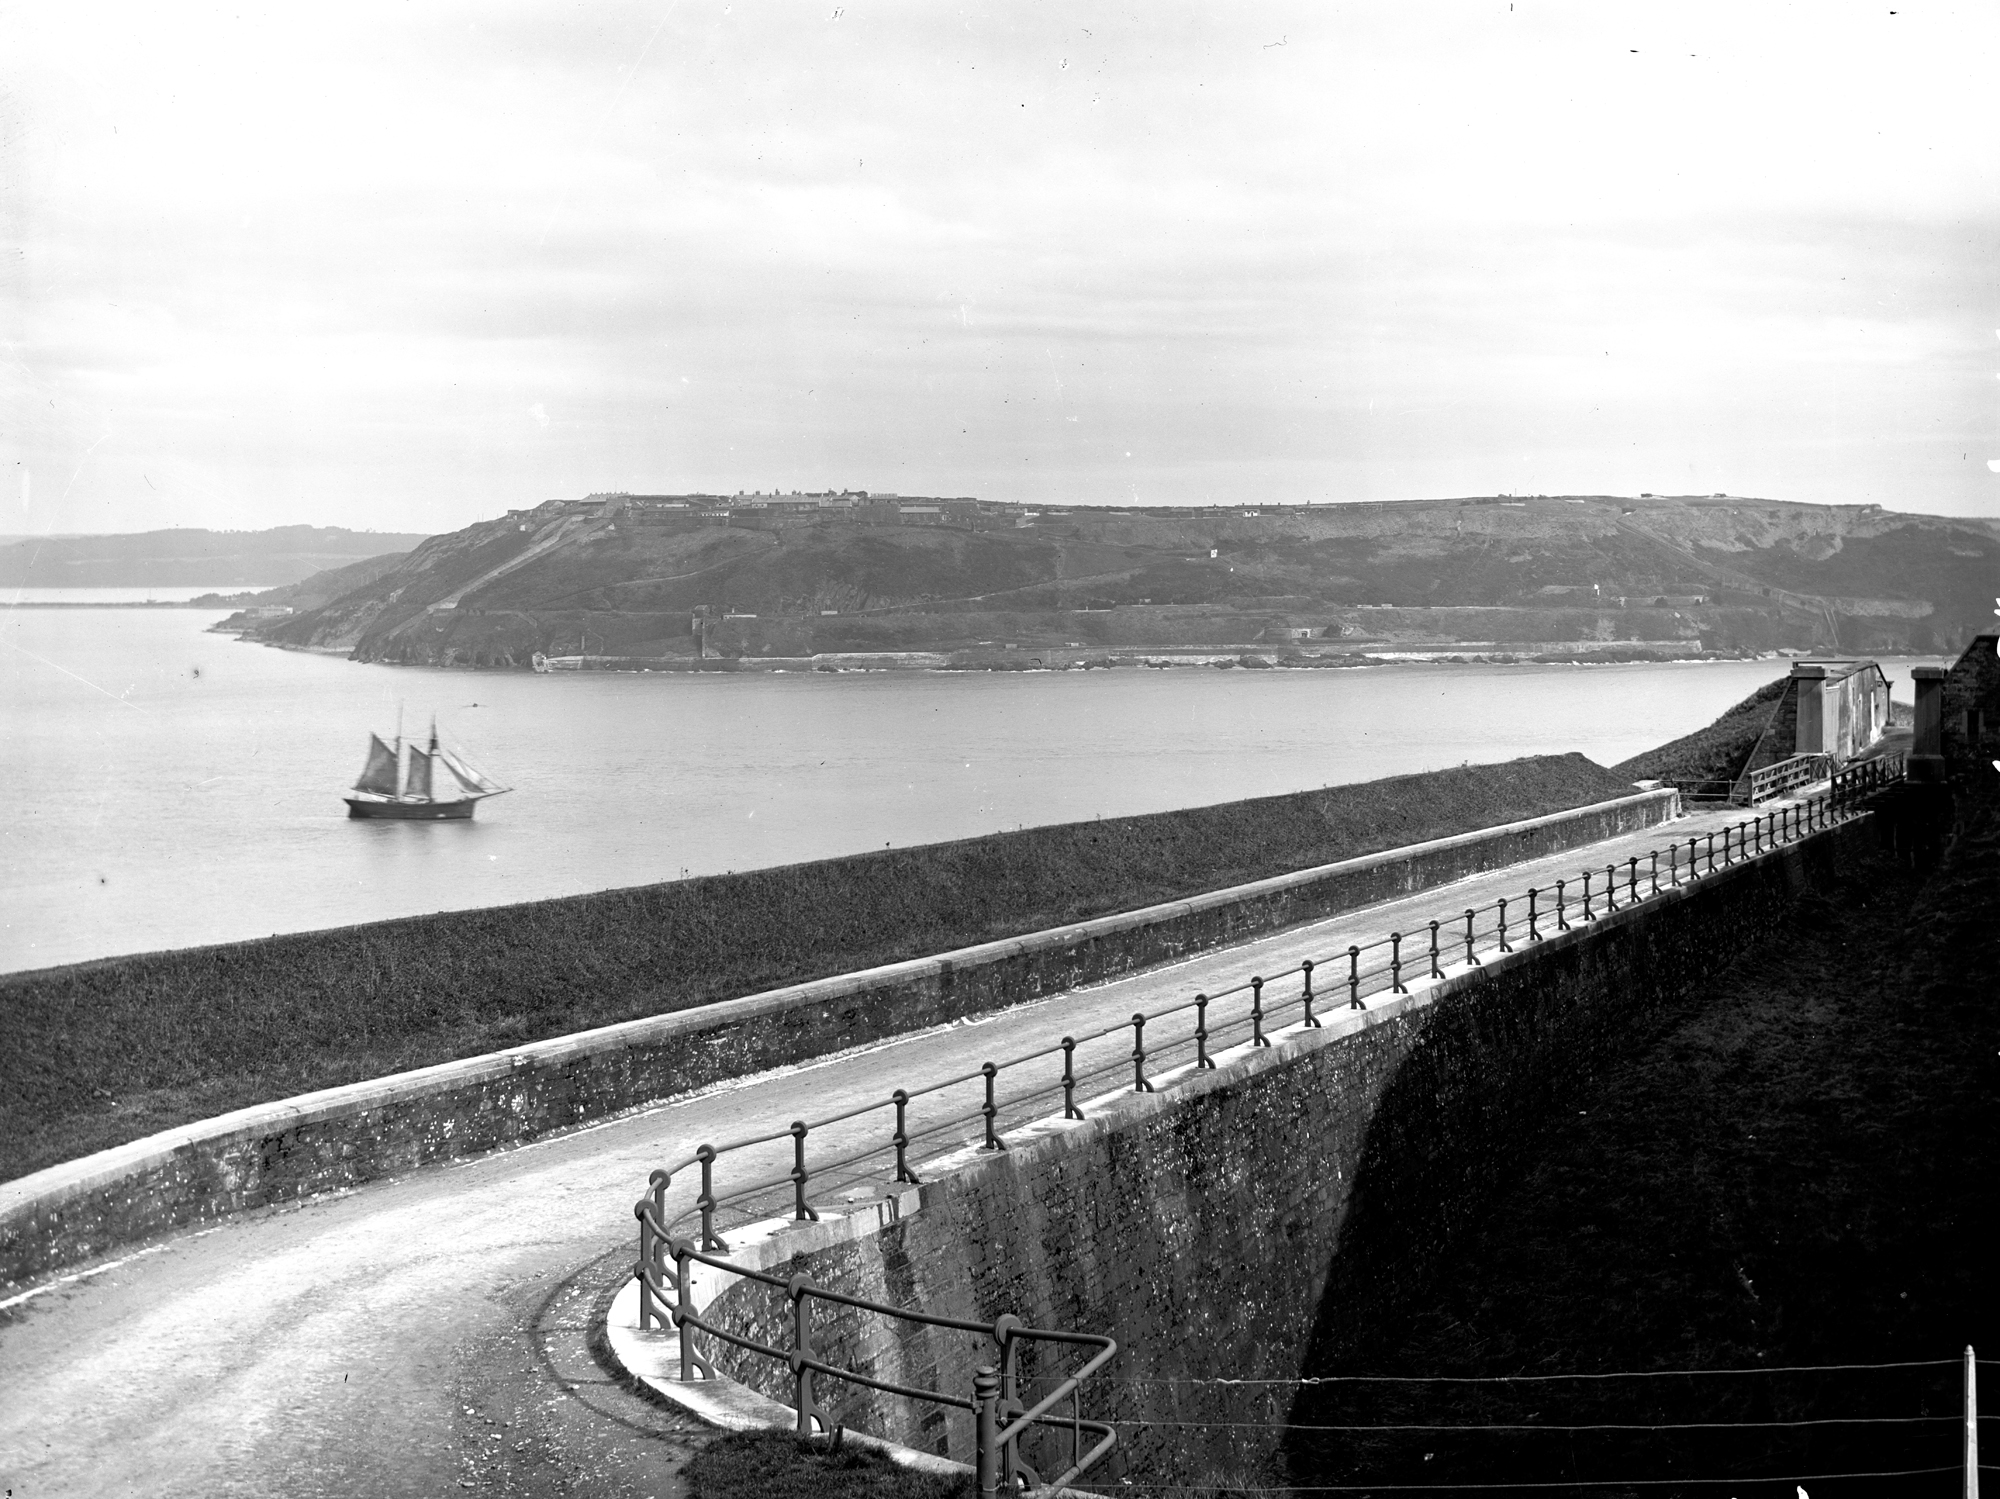 Carlisle Fort, Crosshaven, Co. Cork with sailing boat. Taken from Camden Fort (in the foreground)